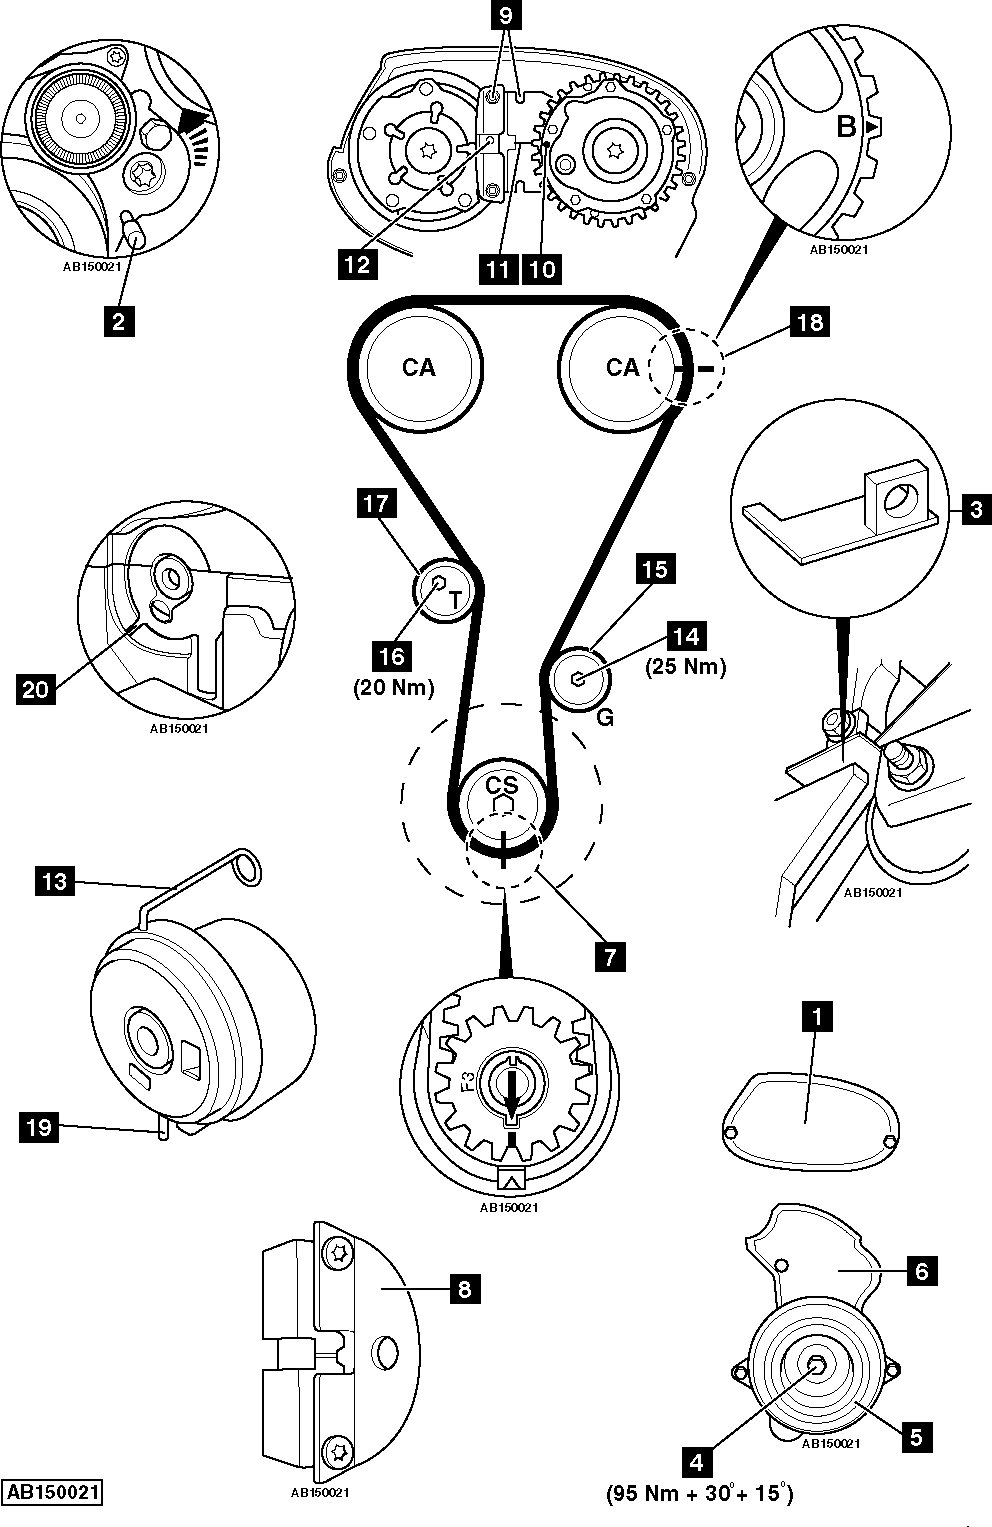 2008 Saturn Astra Timing Belt Diagram Data Set